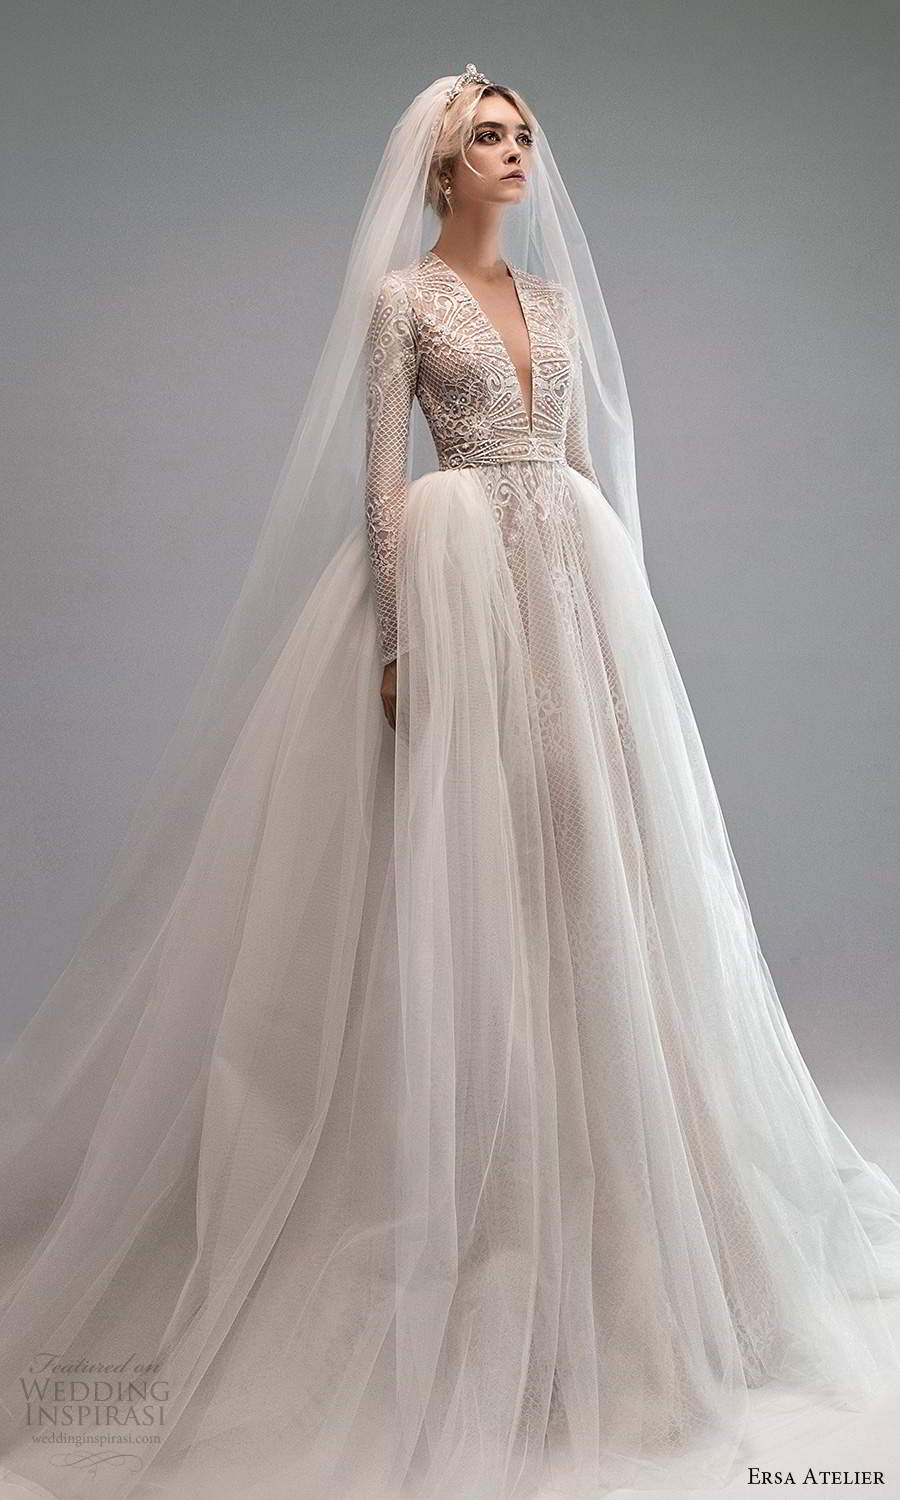 ersa atelier spring 2021 bridal long sleeves plunging v neckline embellished a line wedding dress ball gown overskirt chapel train (4) mv